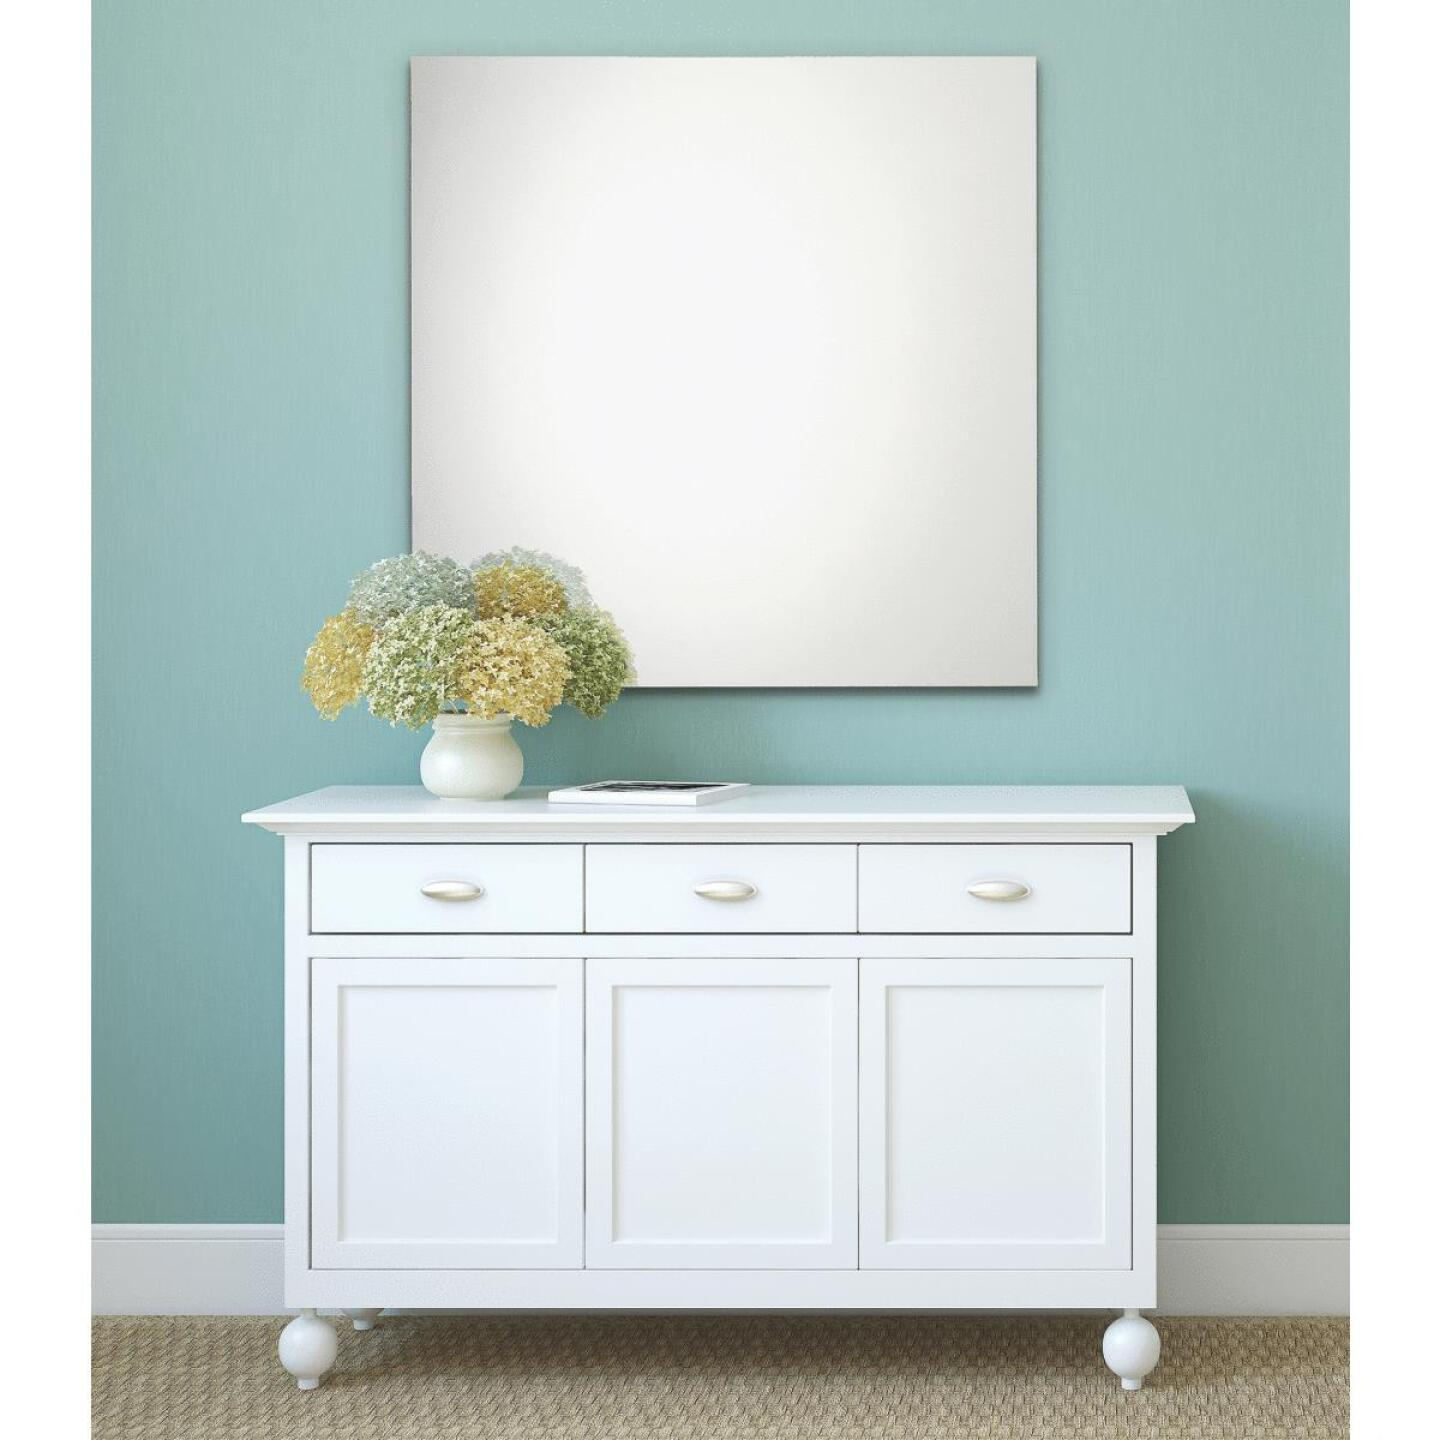 Erias Home Design 36 In. W. x 36 In. H. Frameless Polished Edge Wall Mirror Image 1